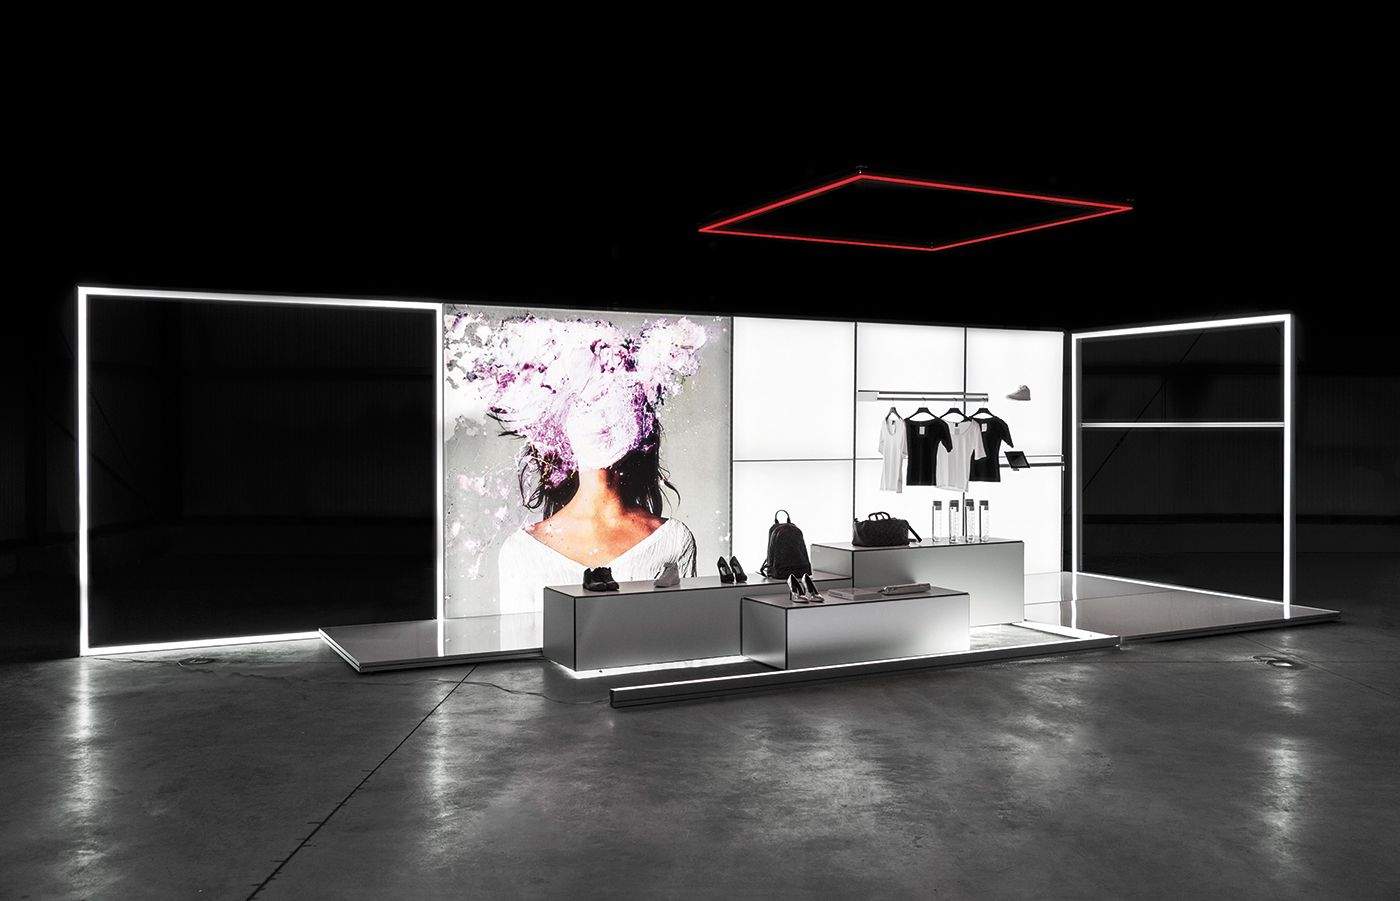 Exhibition Shop Design Mobile Led Light Walls And Frames Modulap System Fur Visuelle Kommunikation Leicht Messestand Design Messestand Messestandgestaltung